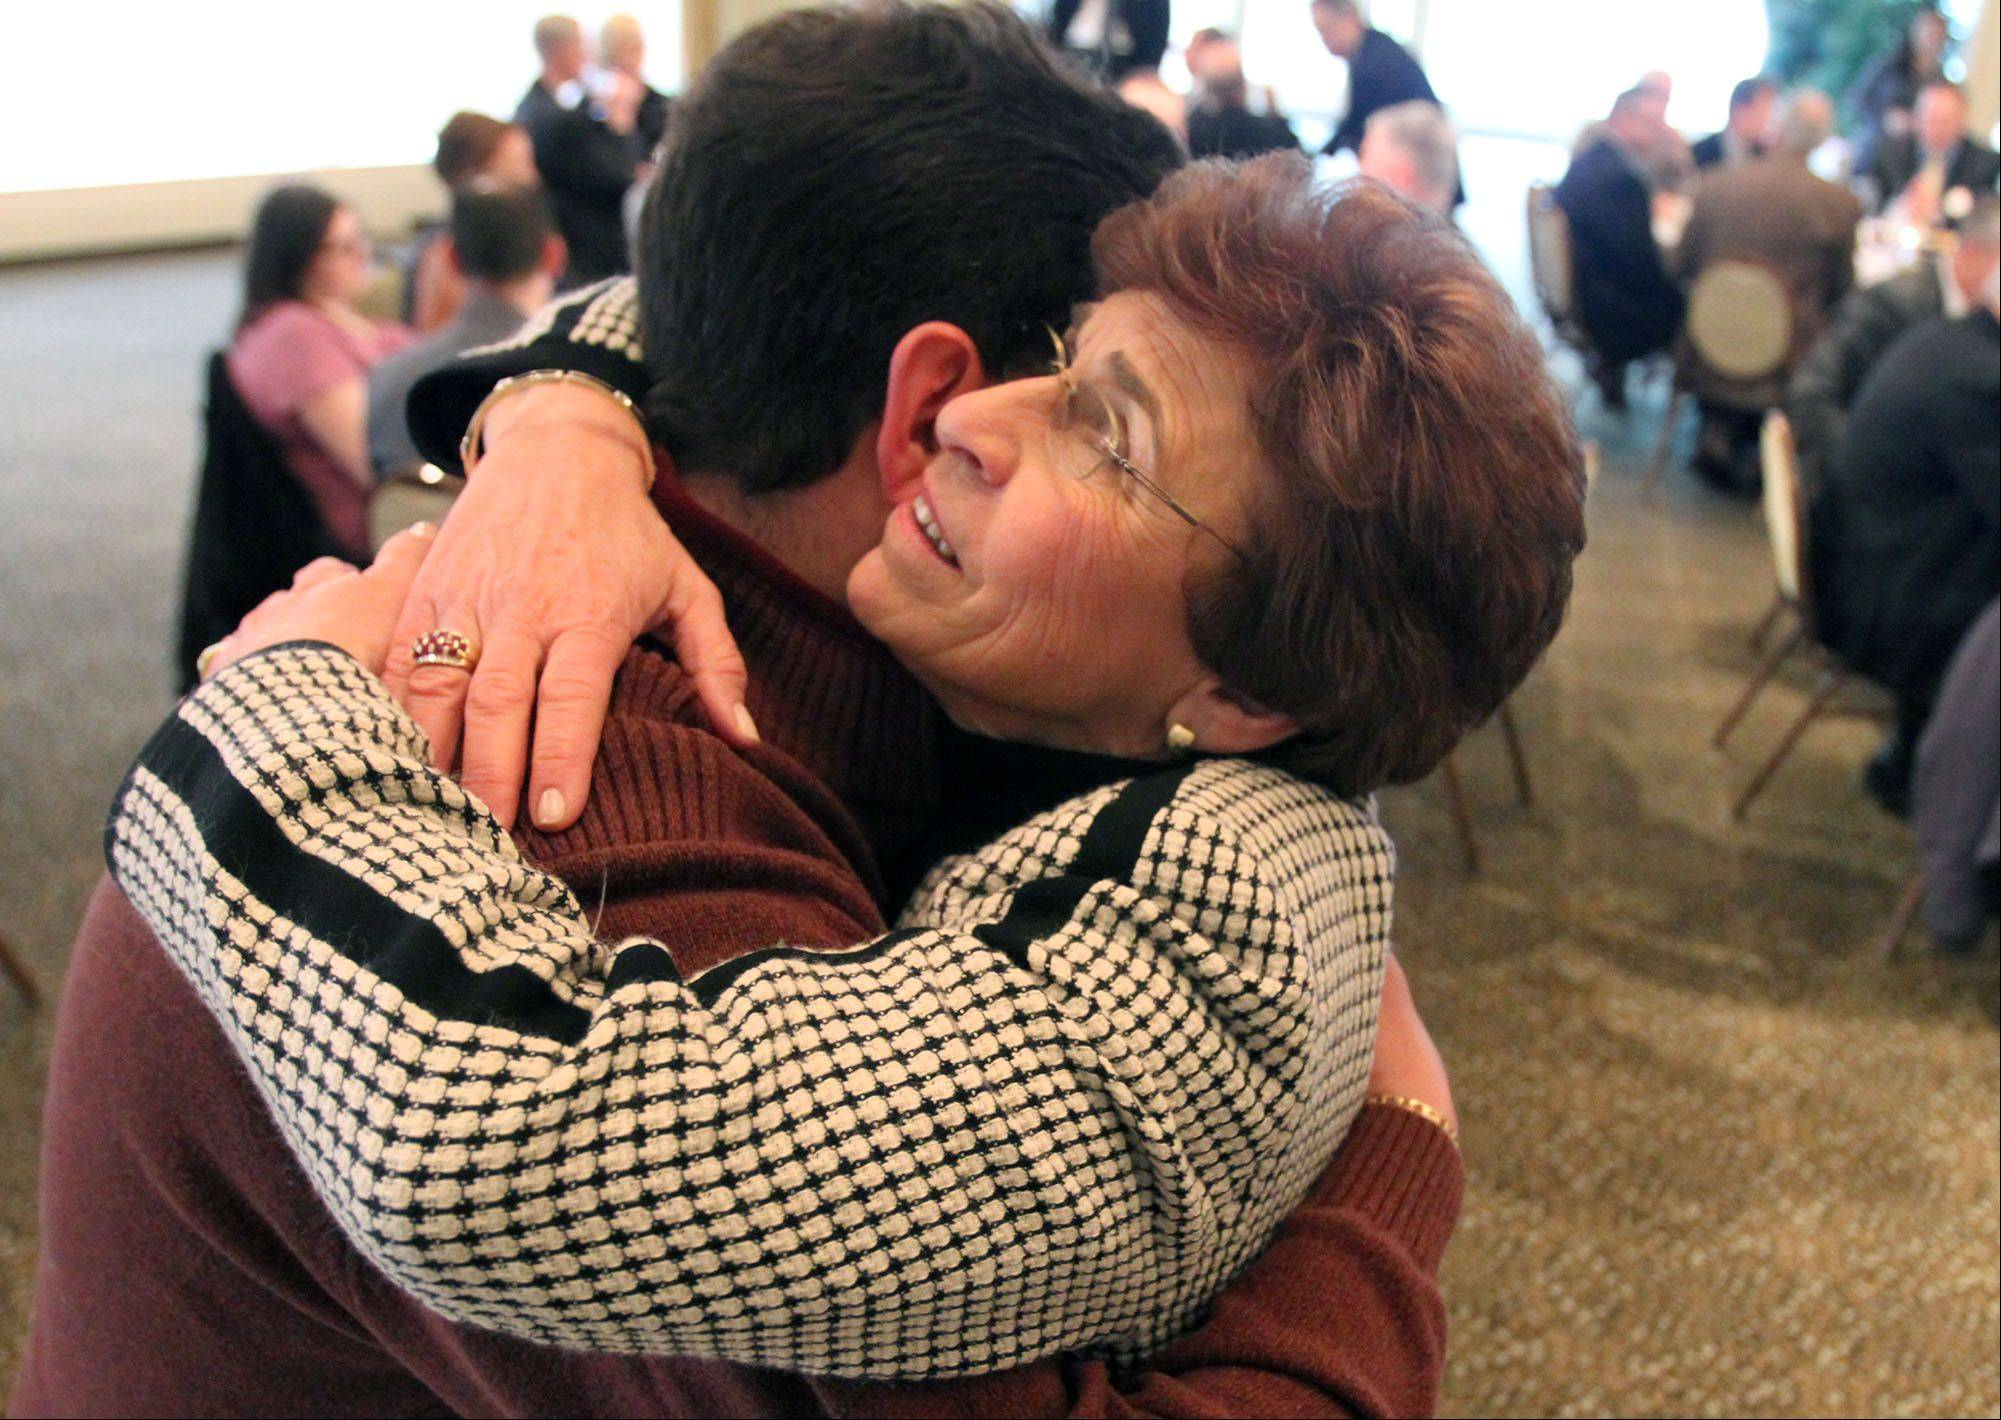 Mayor Arlene Mulder gets a hug from Trustee John Scaletta before beginning her speech.